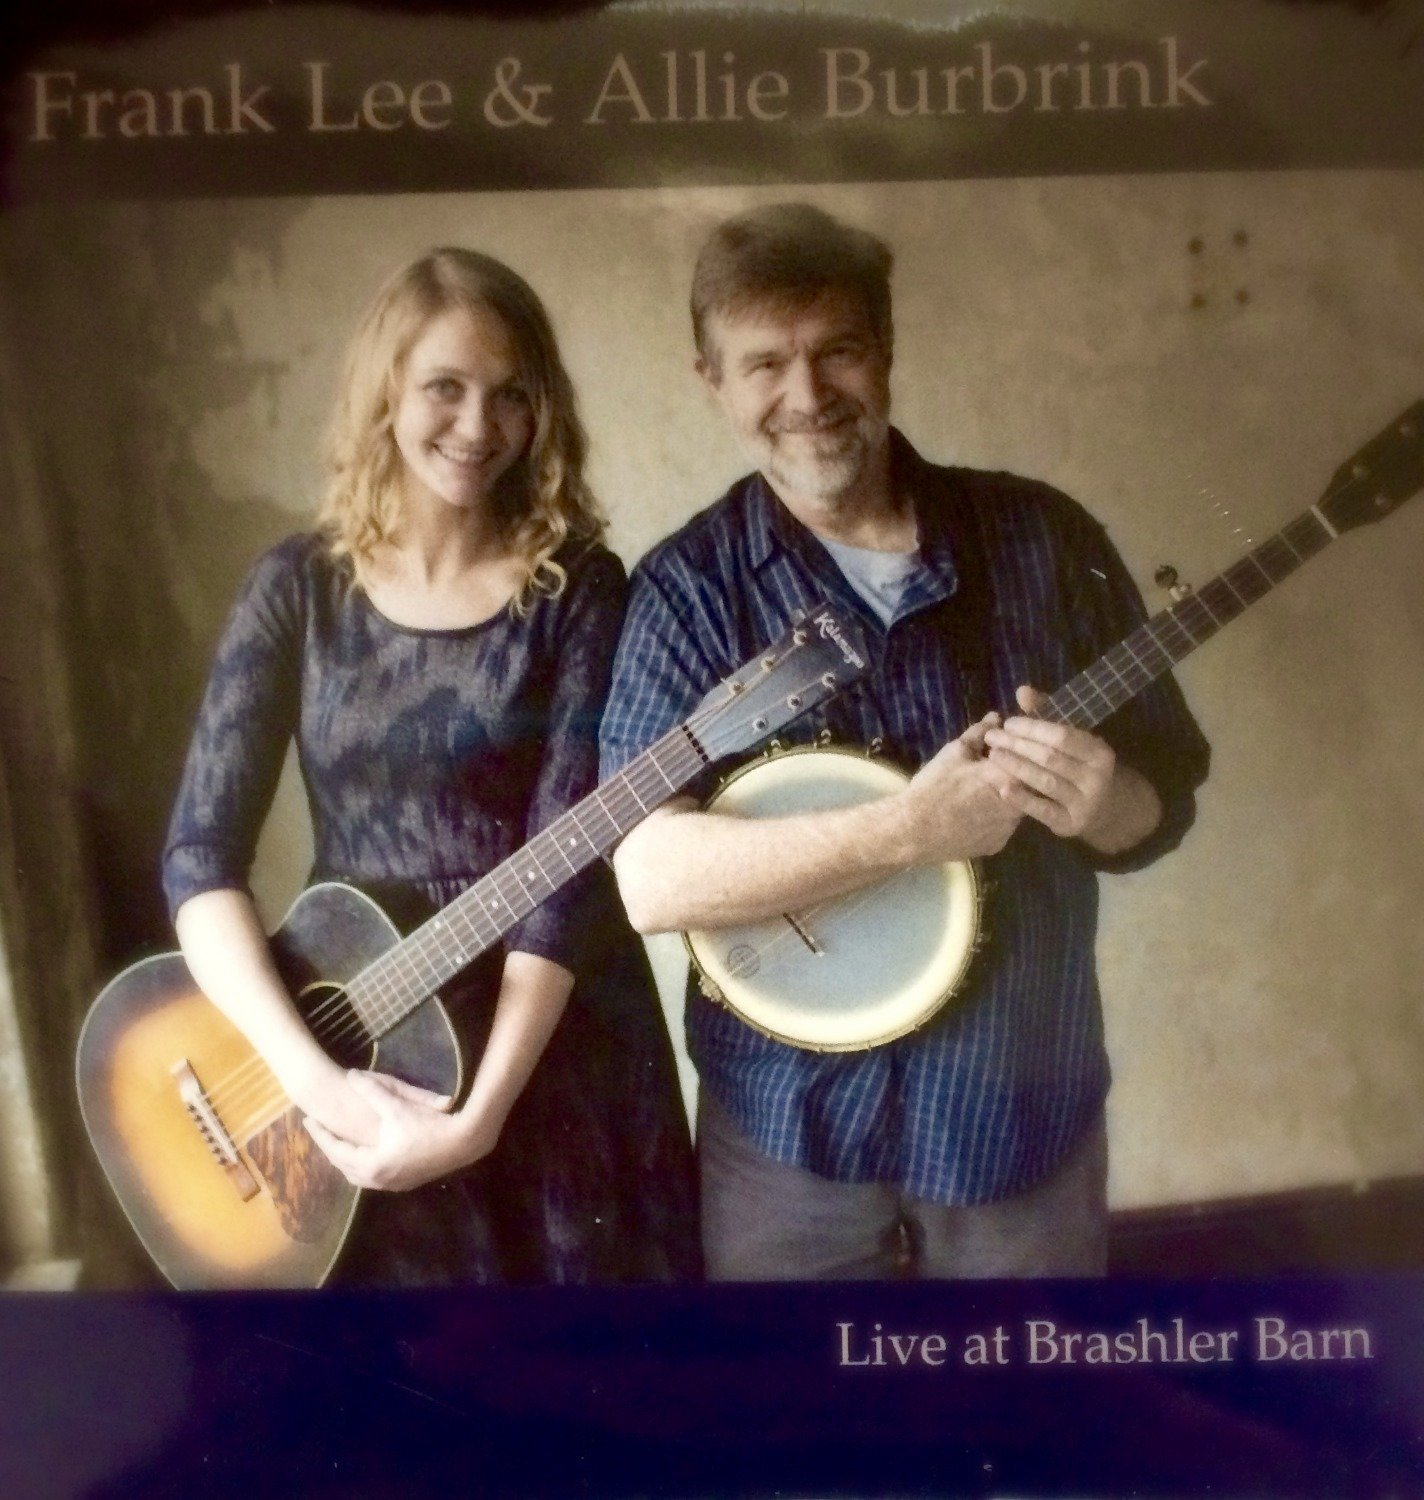 Live at Brashler Barn - DOWNLOAD ONLY